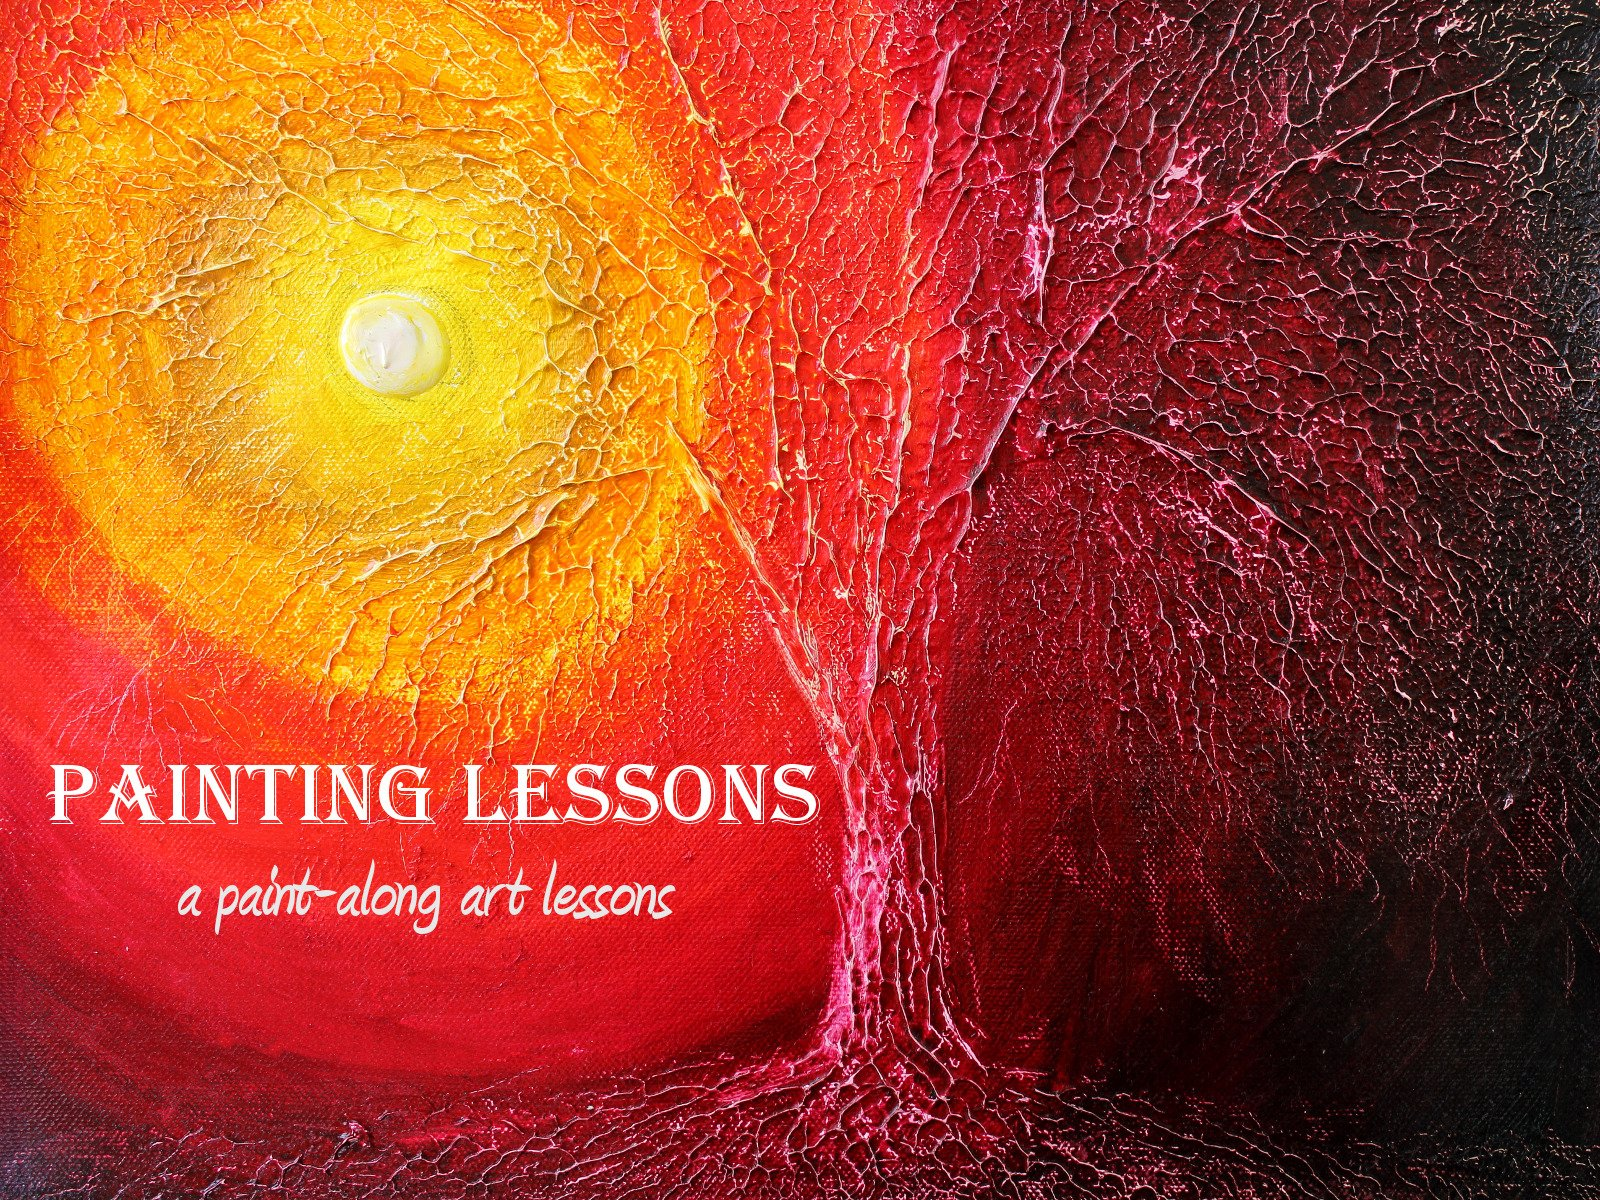 Painting Lessons - Season 3